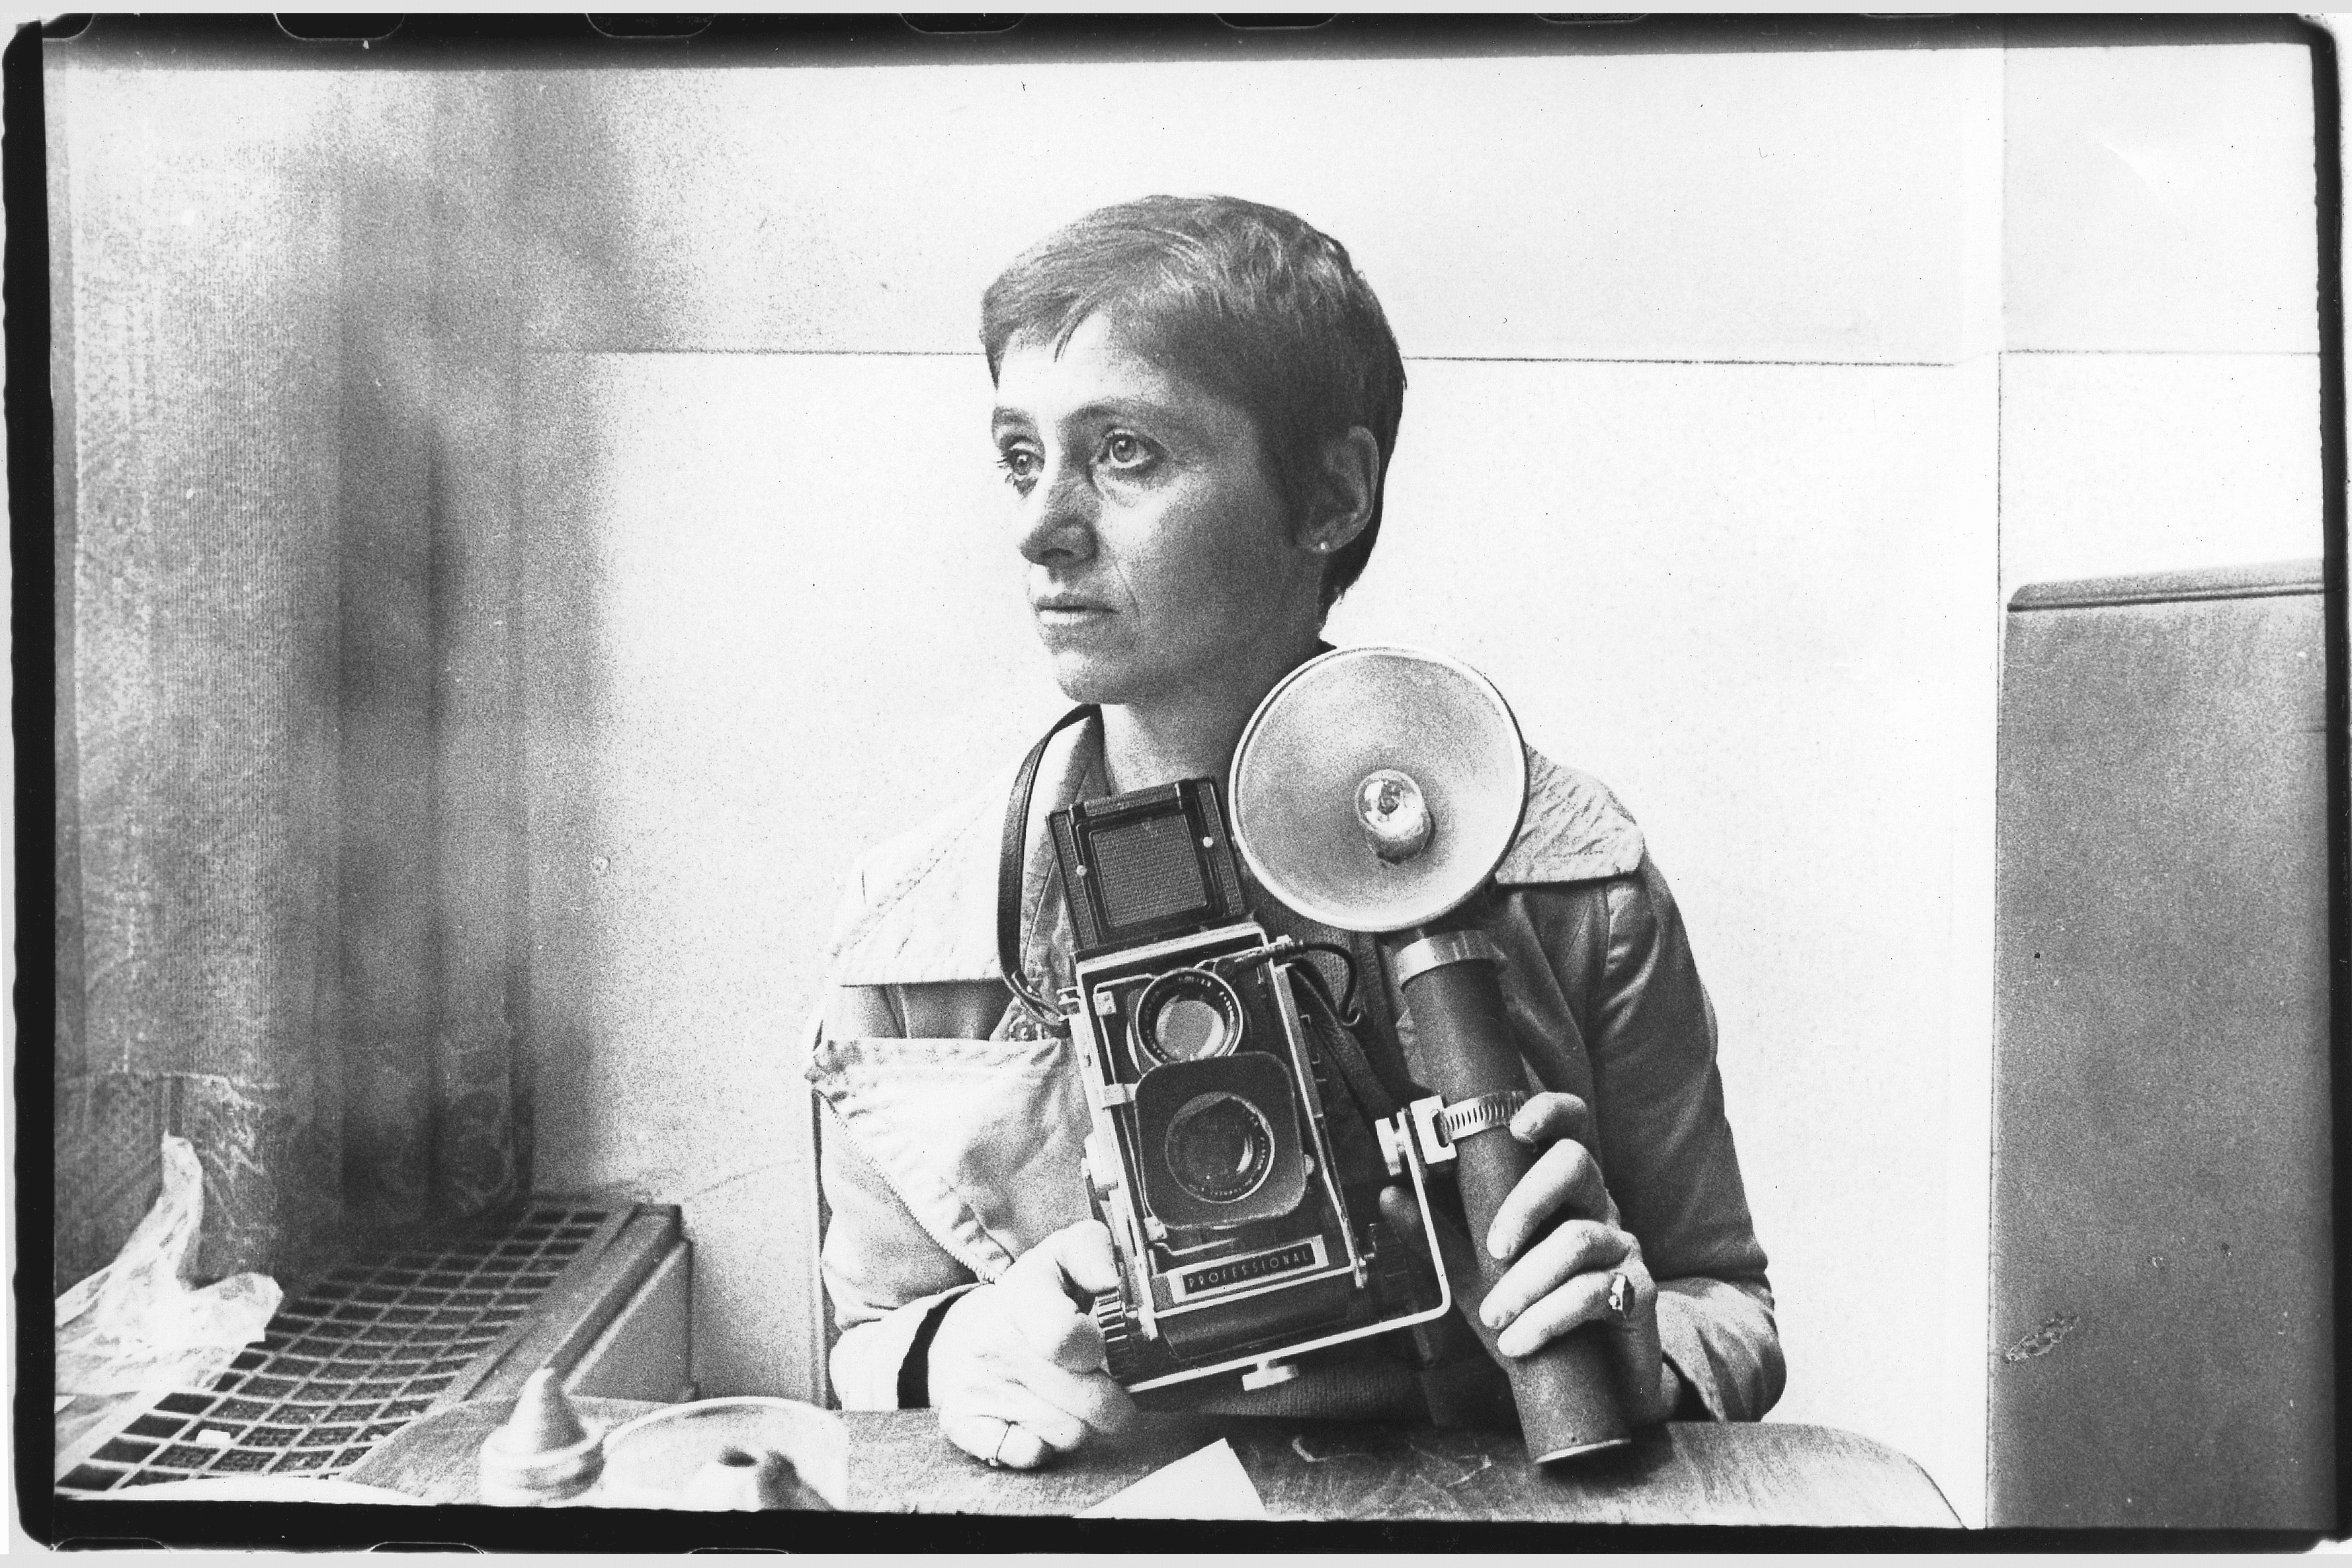 Photographer diane arbus poses for a rare portrait in the automat at sixth avenue between 41st